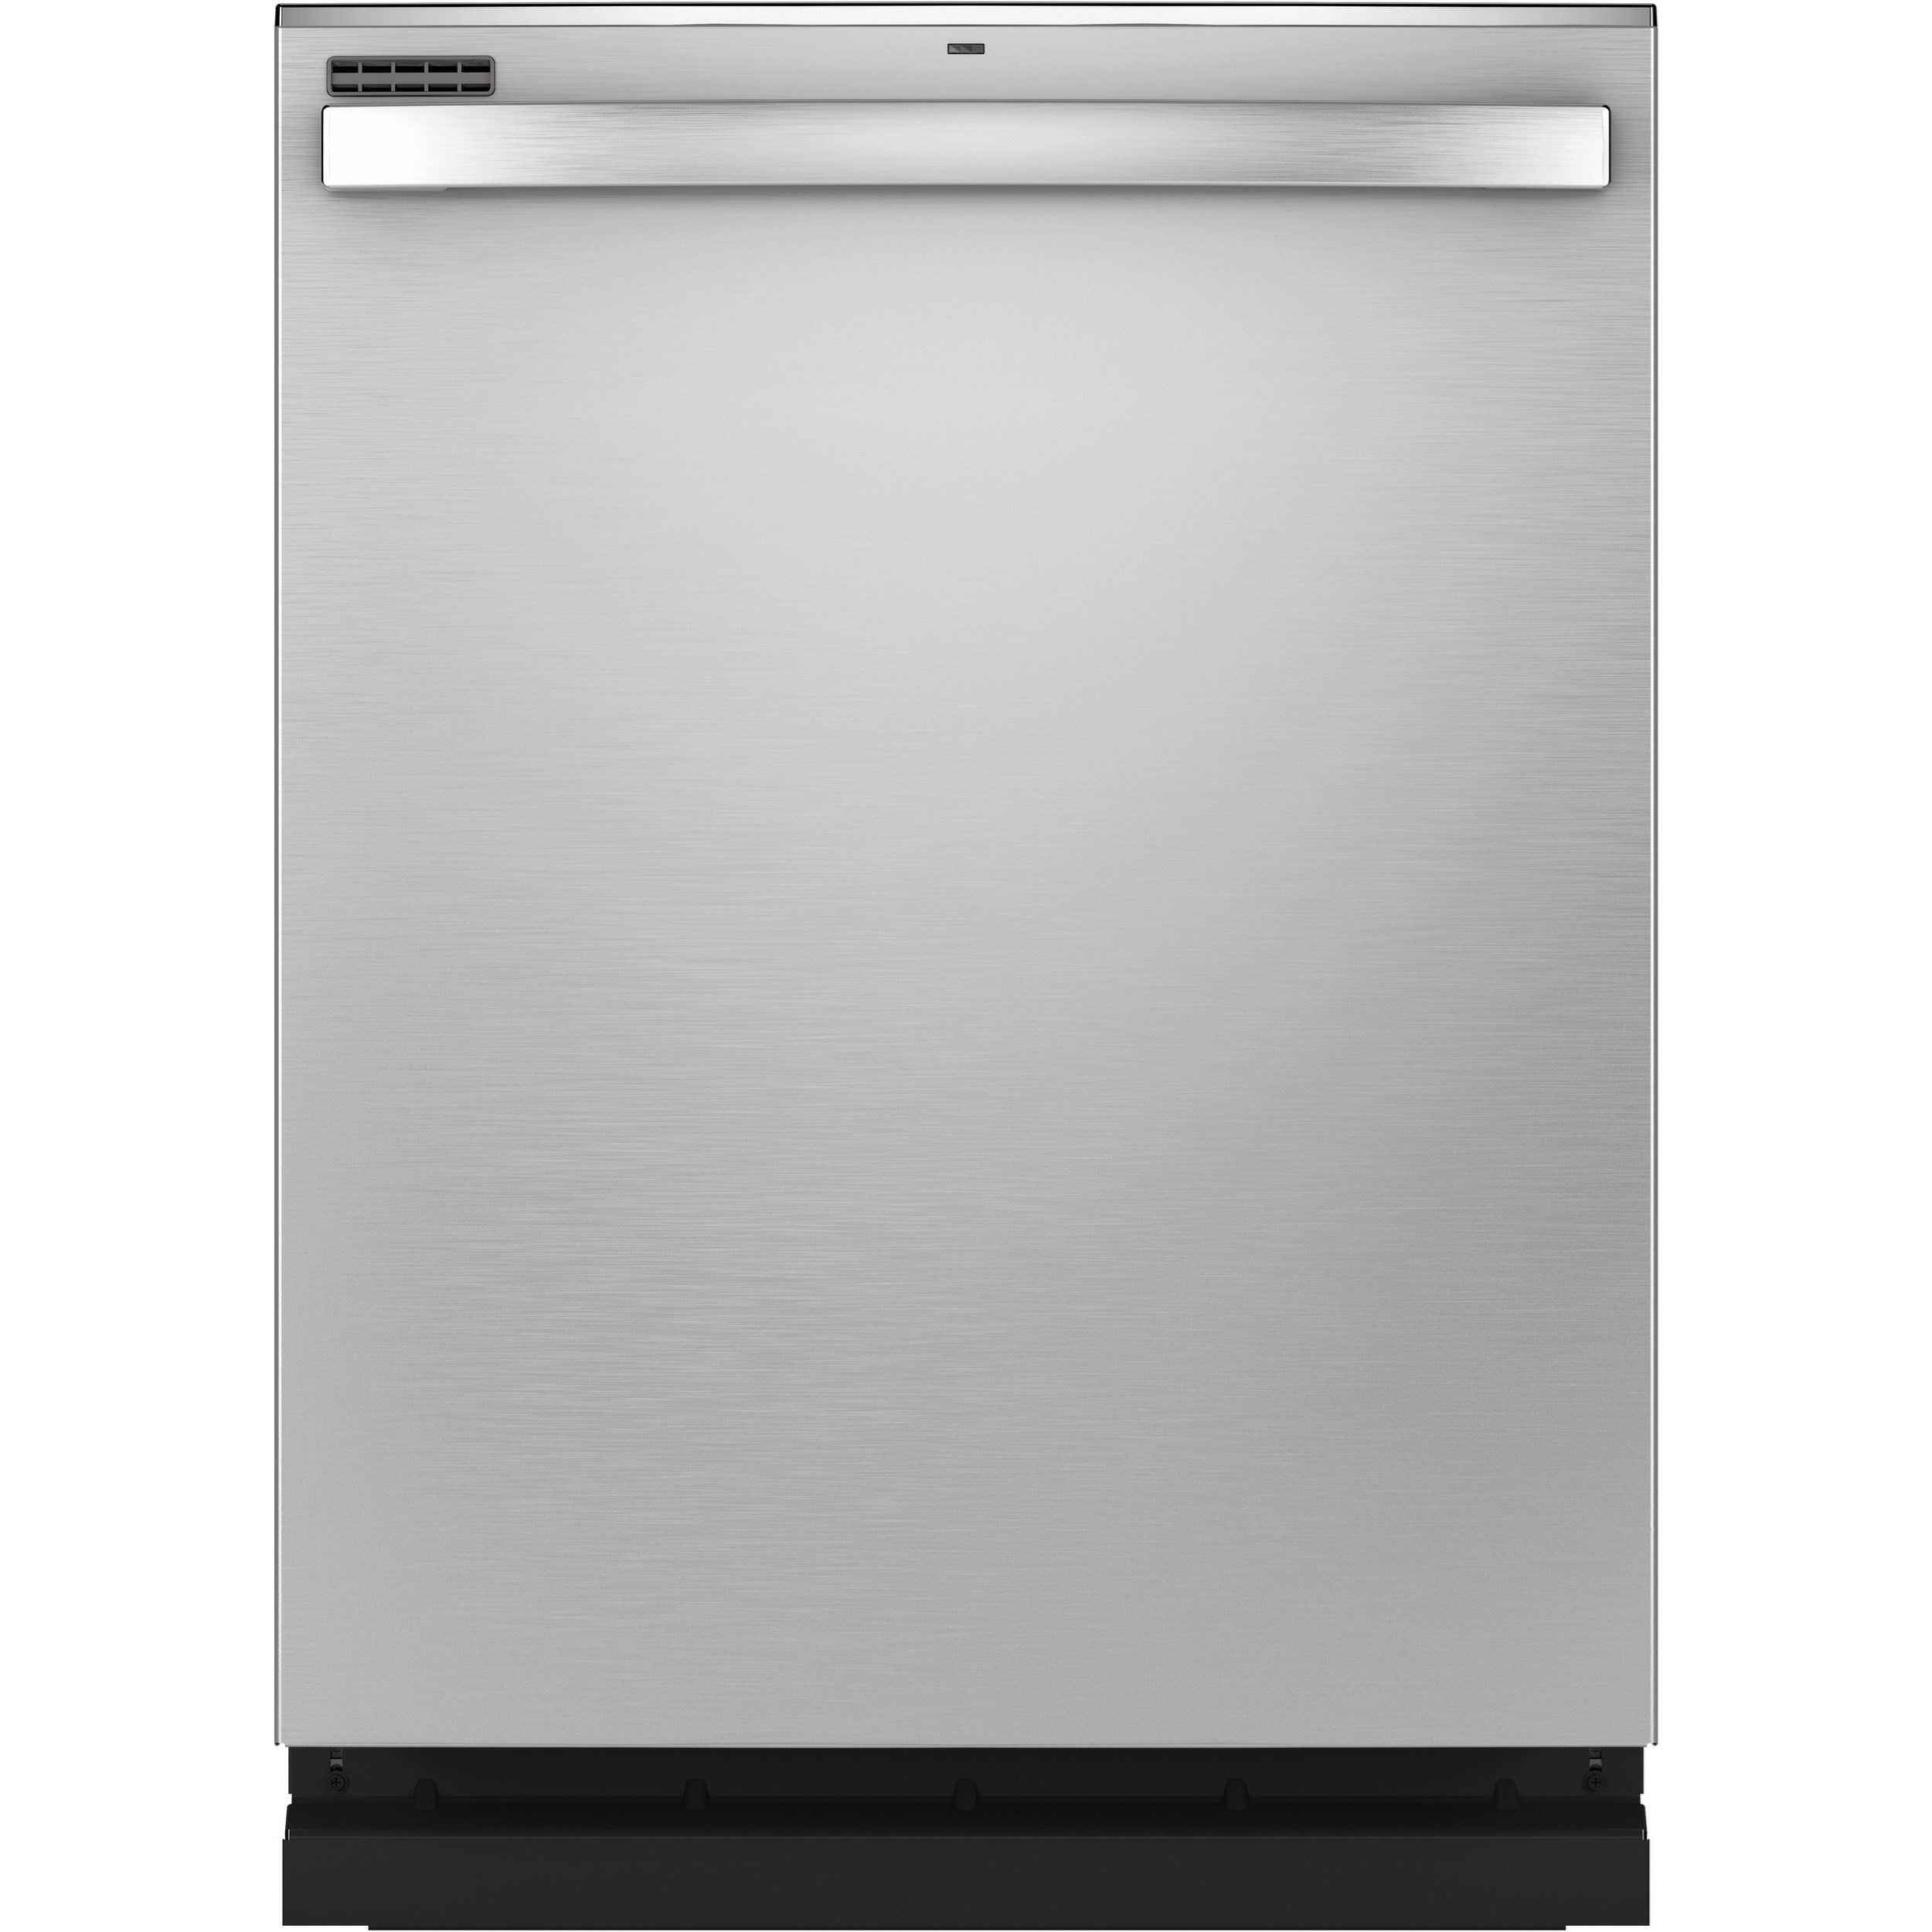 Dishwashers GE® Stainless Steel Interior Dishwasher by GE Appliances at Furniture and ApplianceMart